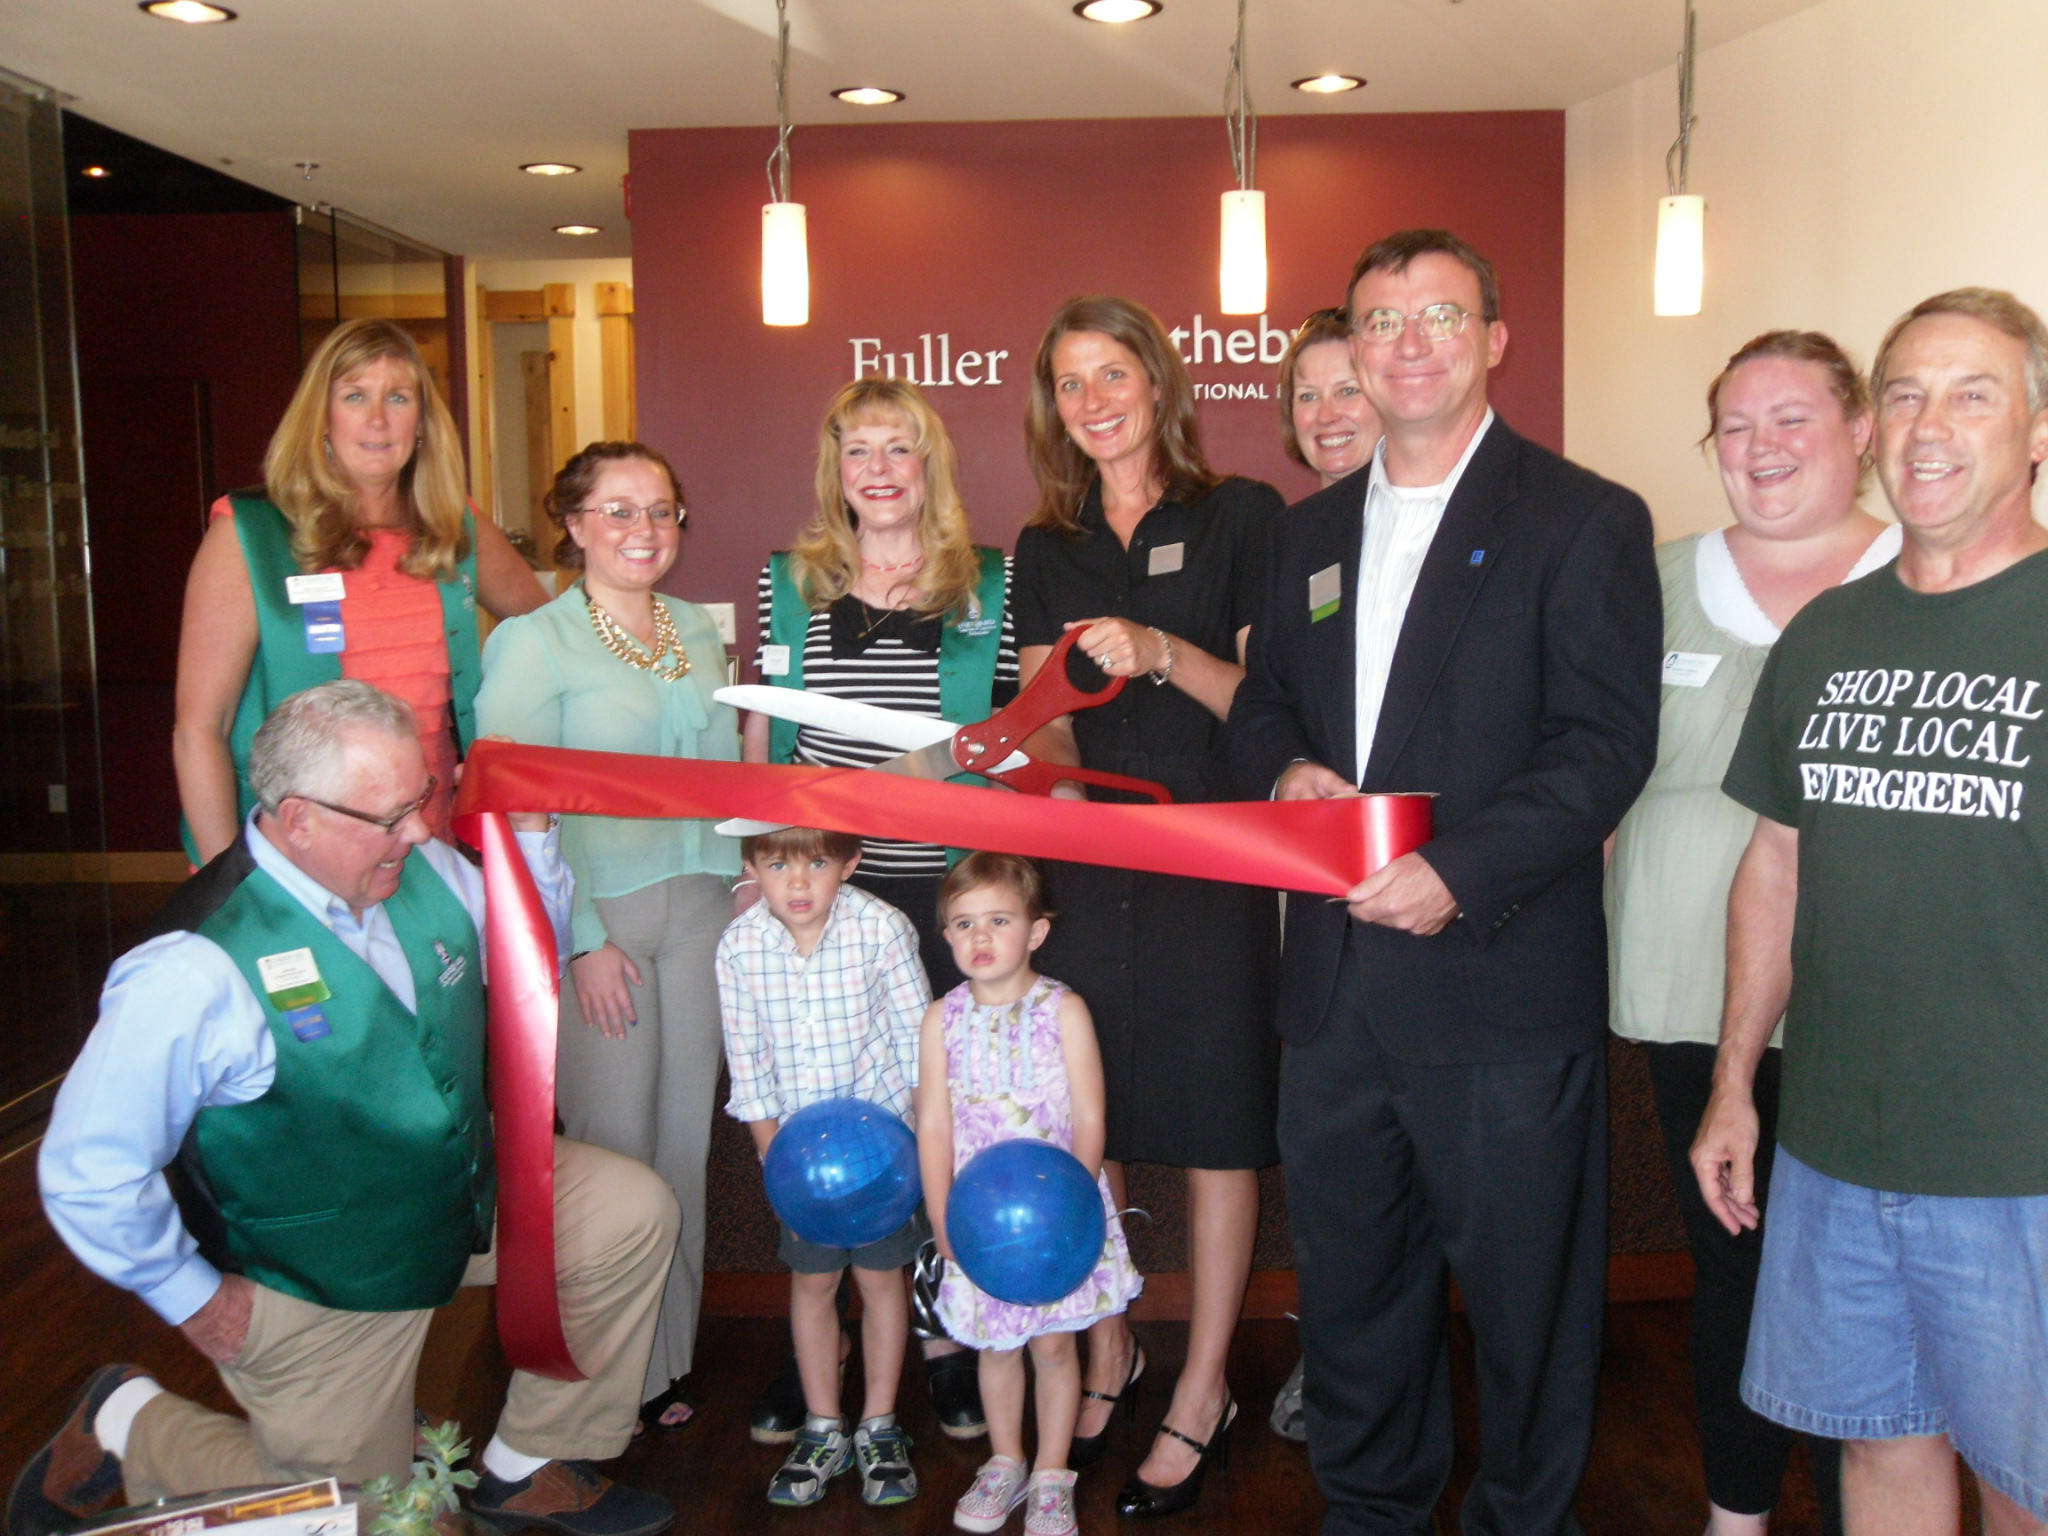 FSIR Evergreen broker, Christy Schoonover, assisting in the EACC ribbon cutting